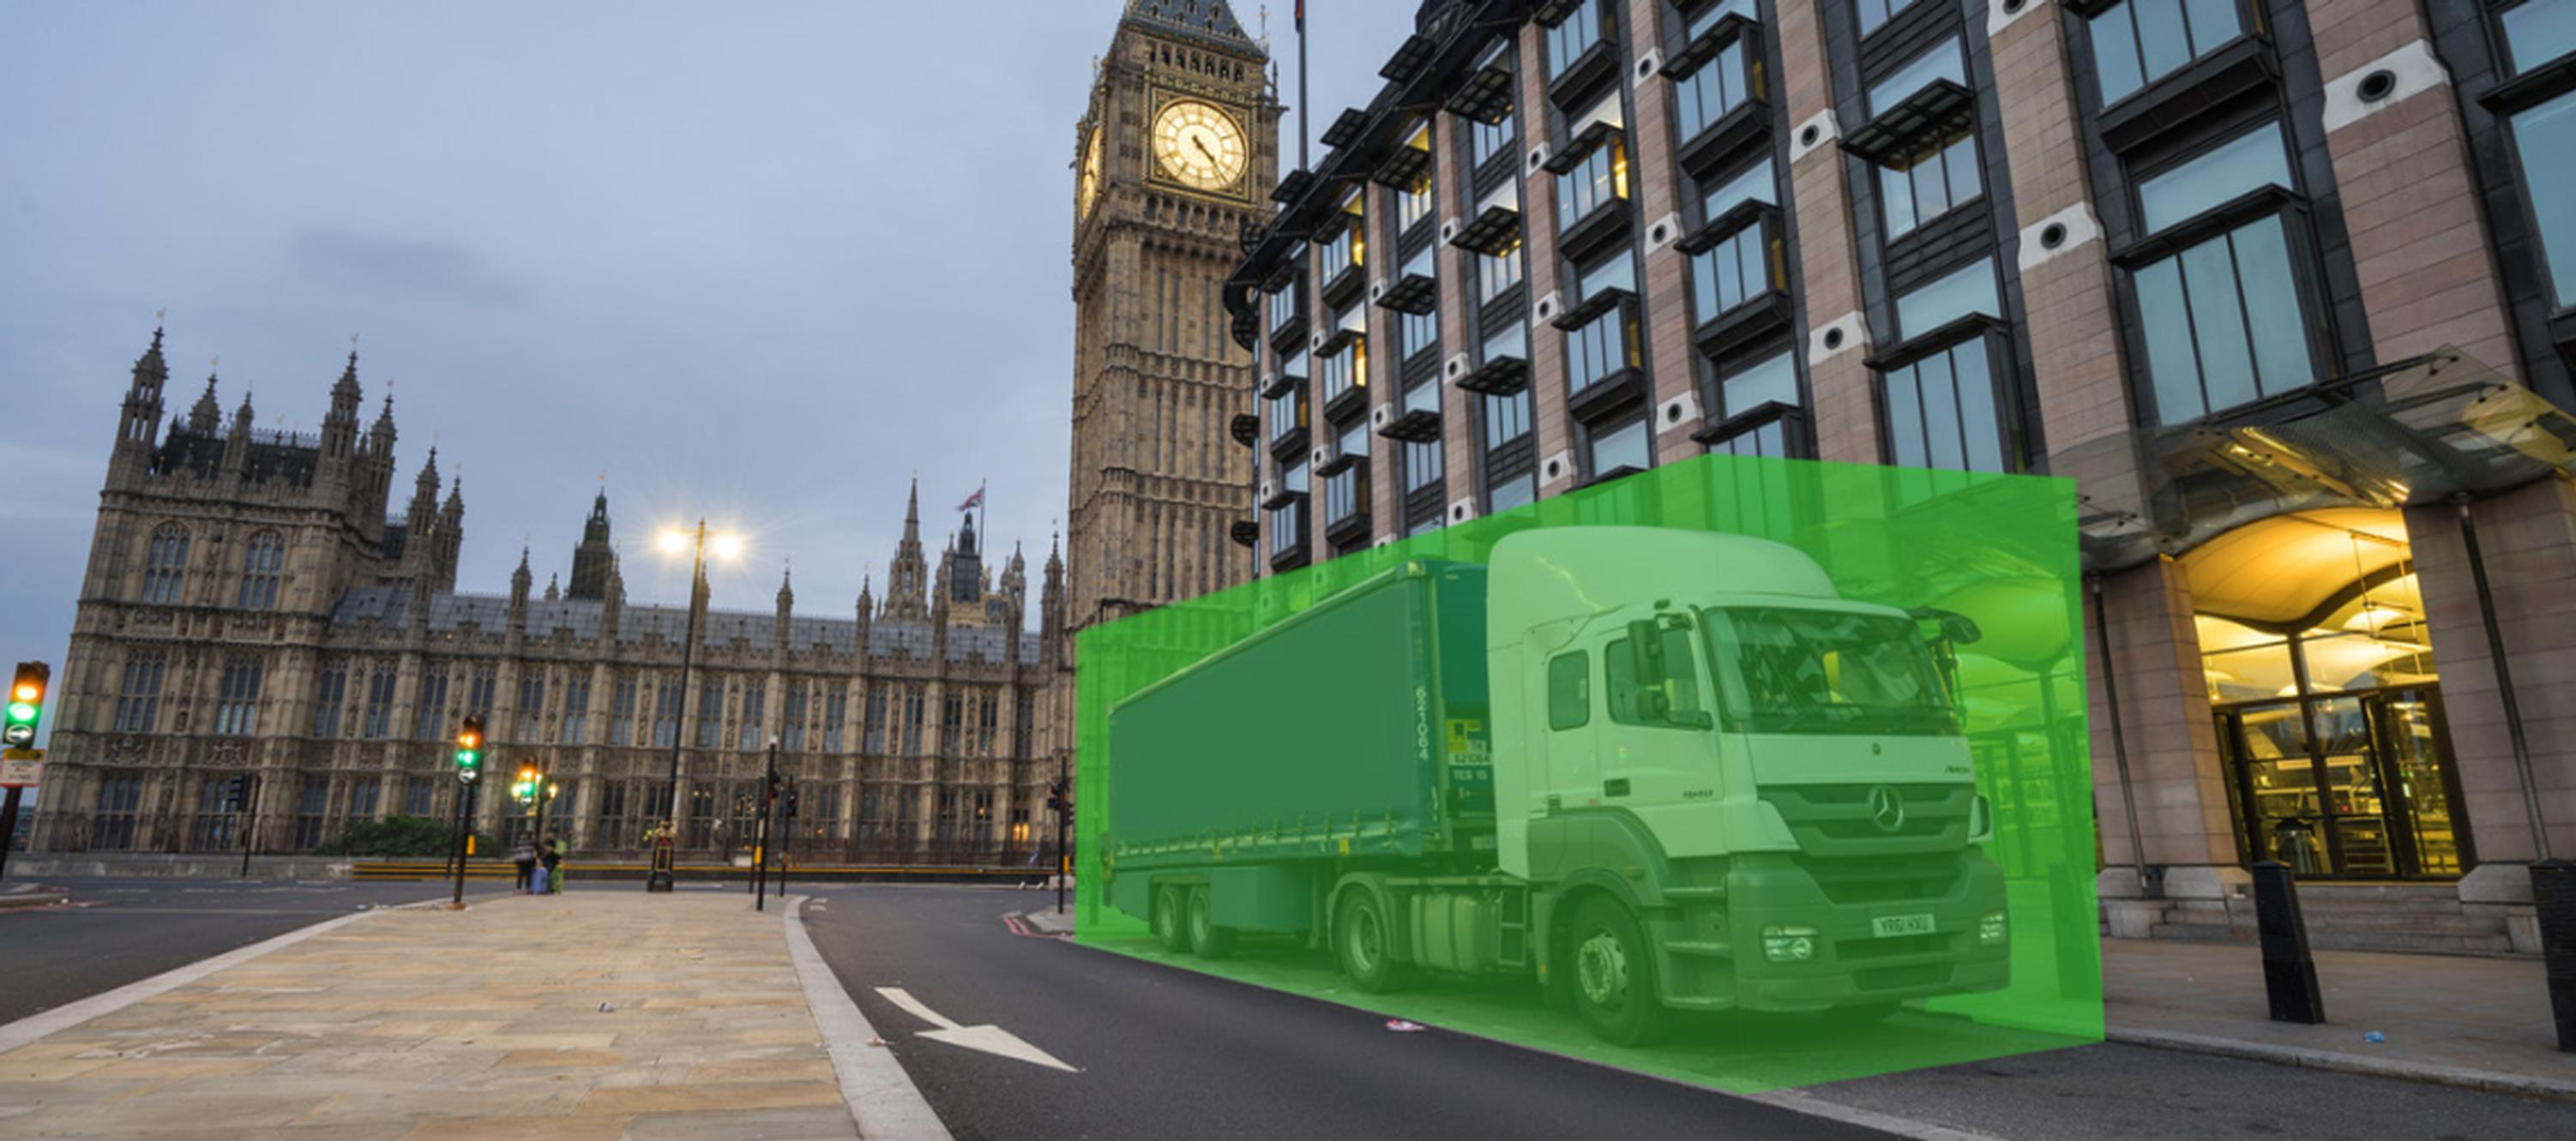 Kerb is designed to allow delivery companies and hauliers to pay for timeslots during which they can load or unload on otherwise restricted inner city kerb space